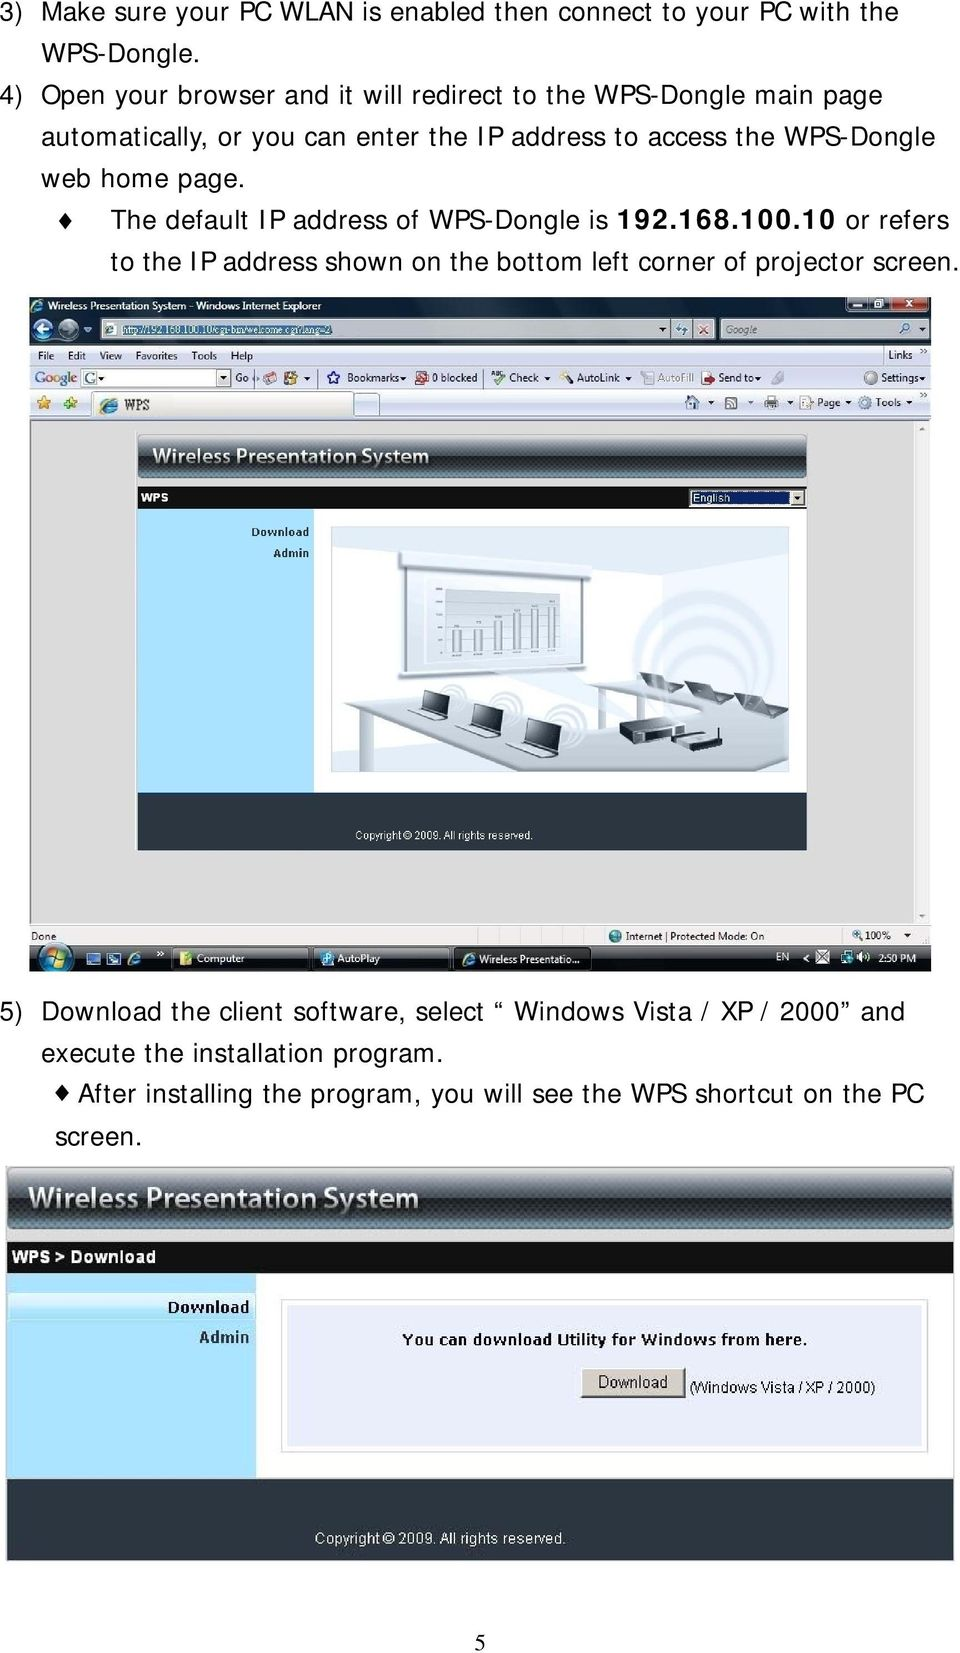 WPS-Dongle web home page. The default IP address of WPS-Dongle is 192.168.100.